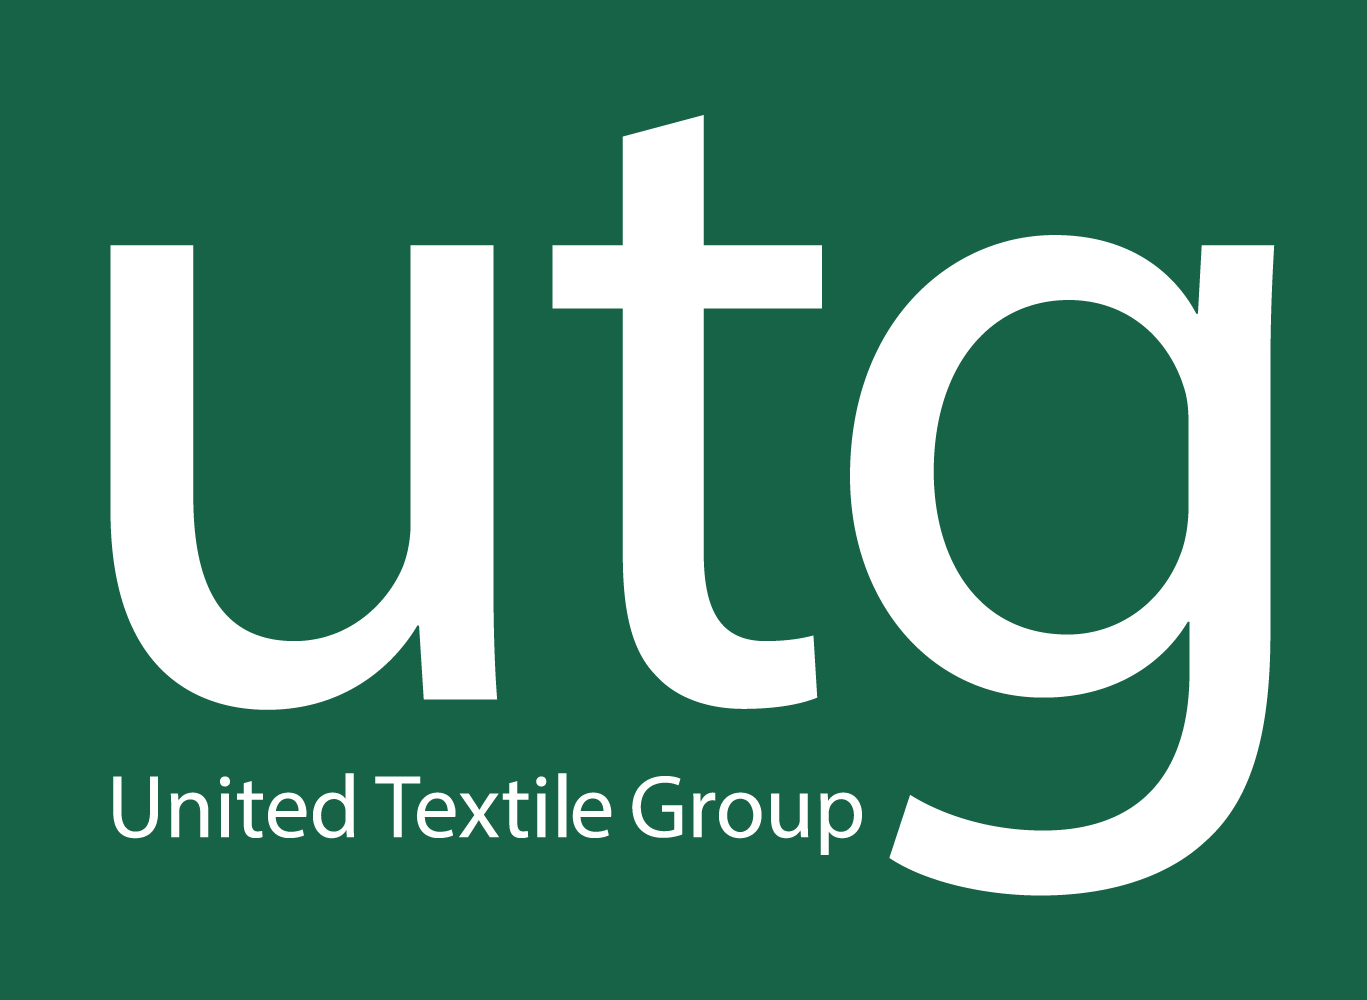 UTG LOGO United Textile Group